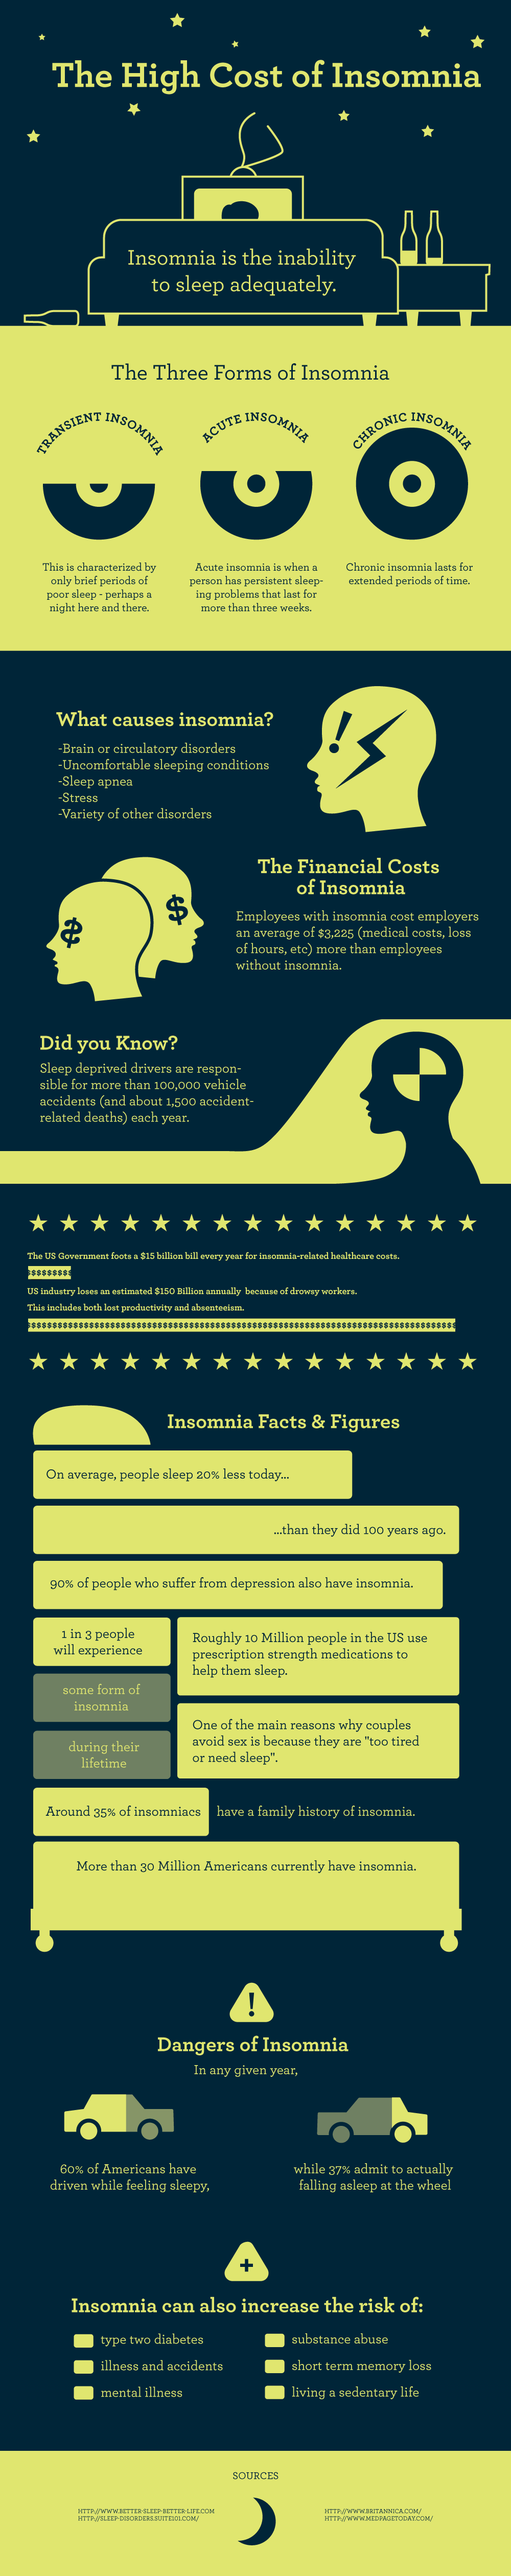 The Cost of Insomnia on Society.